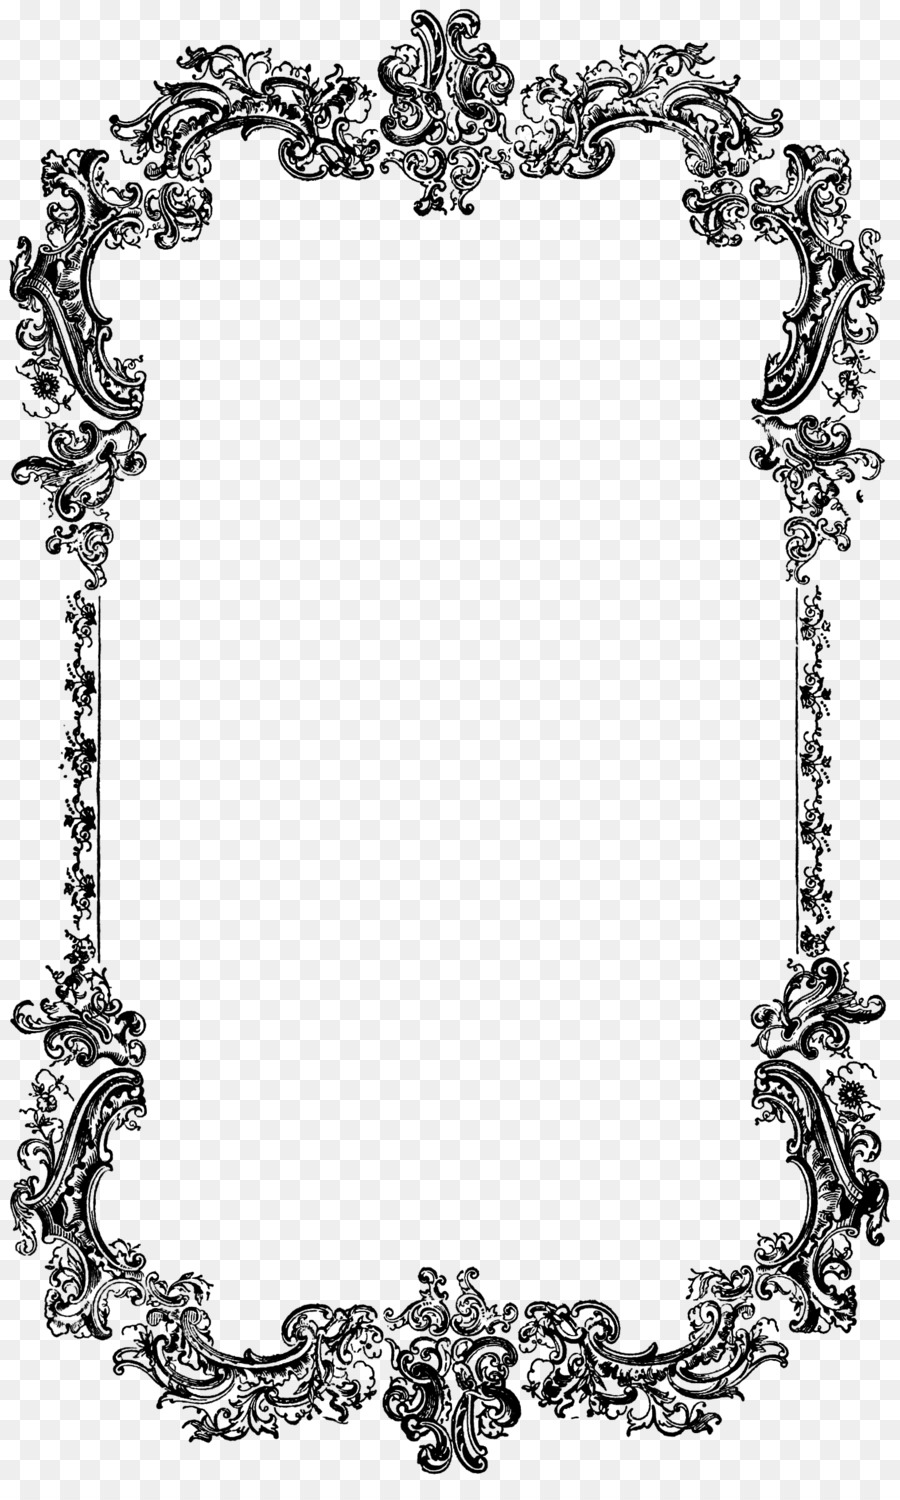 Borders and Frames Free content Clip art - Decoration Border ...